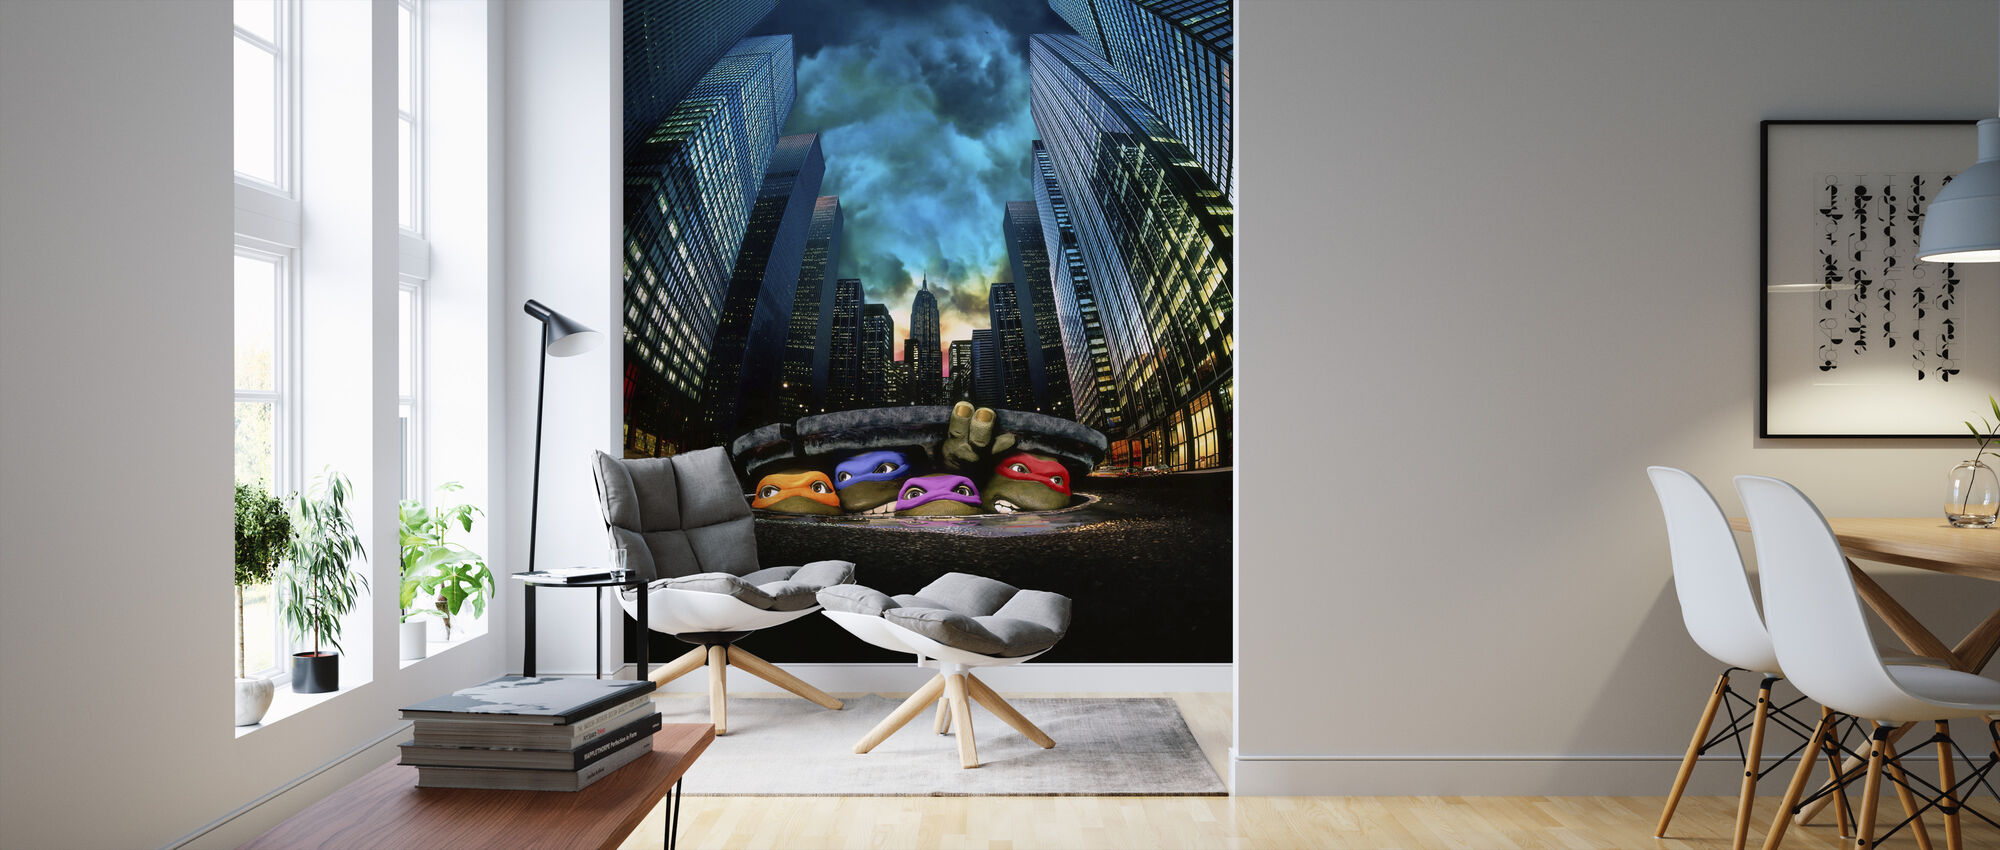 Teenage Mutant Ninja Turtles - Wallpaper - Living Room